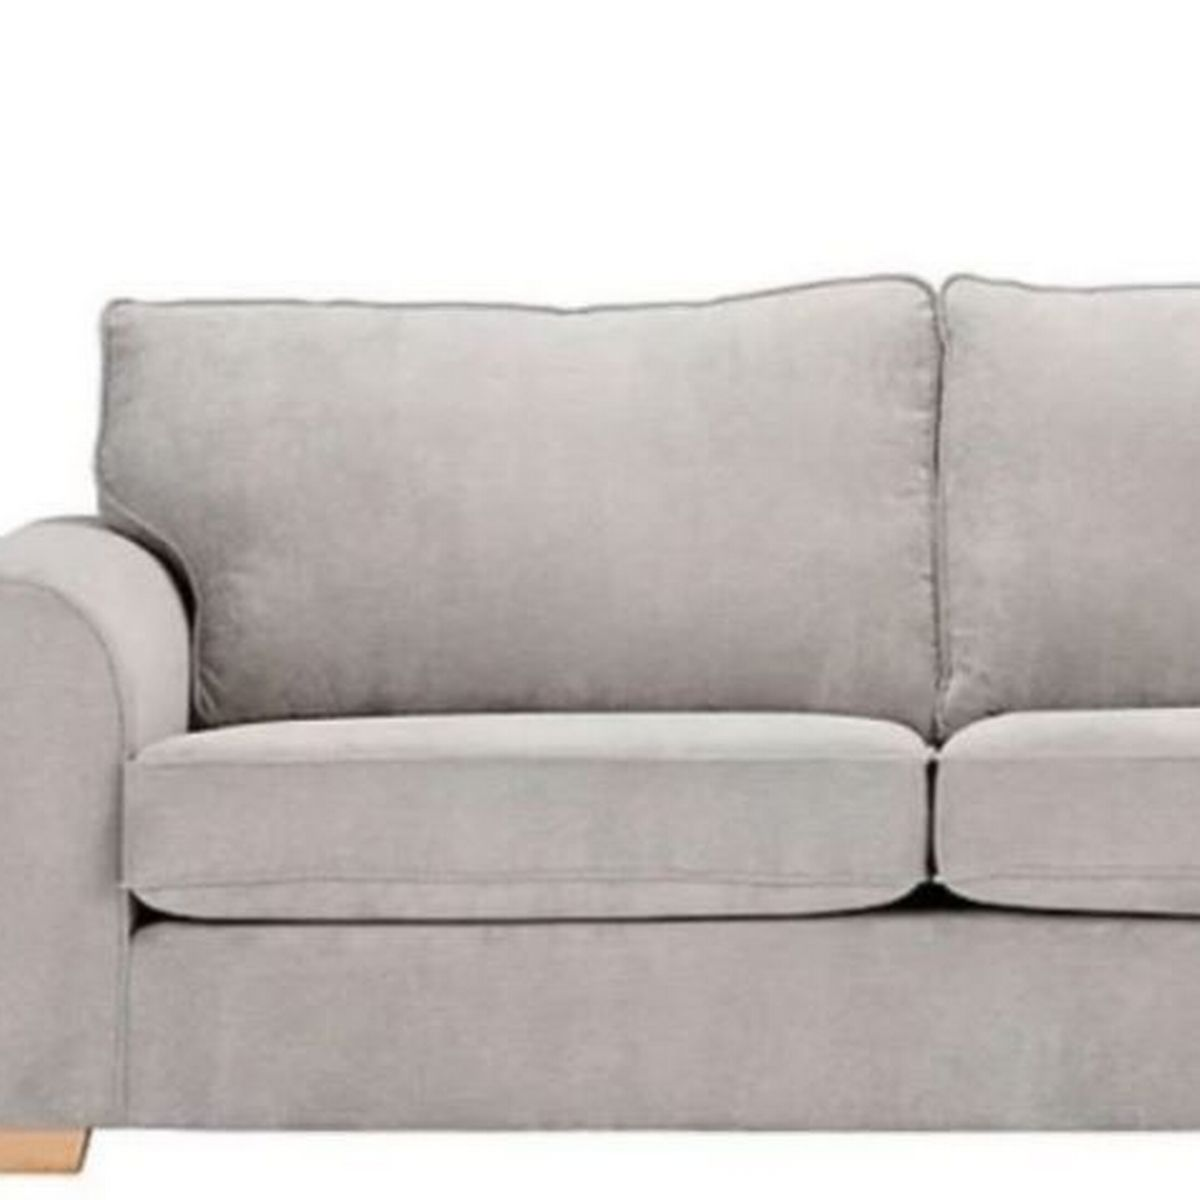 Asda Price Glitch Sees Shoppers Snap Up 375 Three Seater Sofa For Just 10 Mylondon